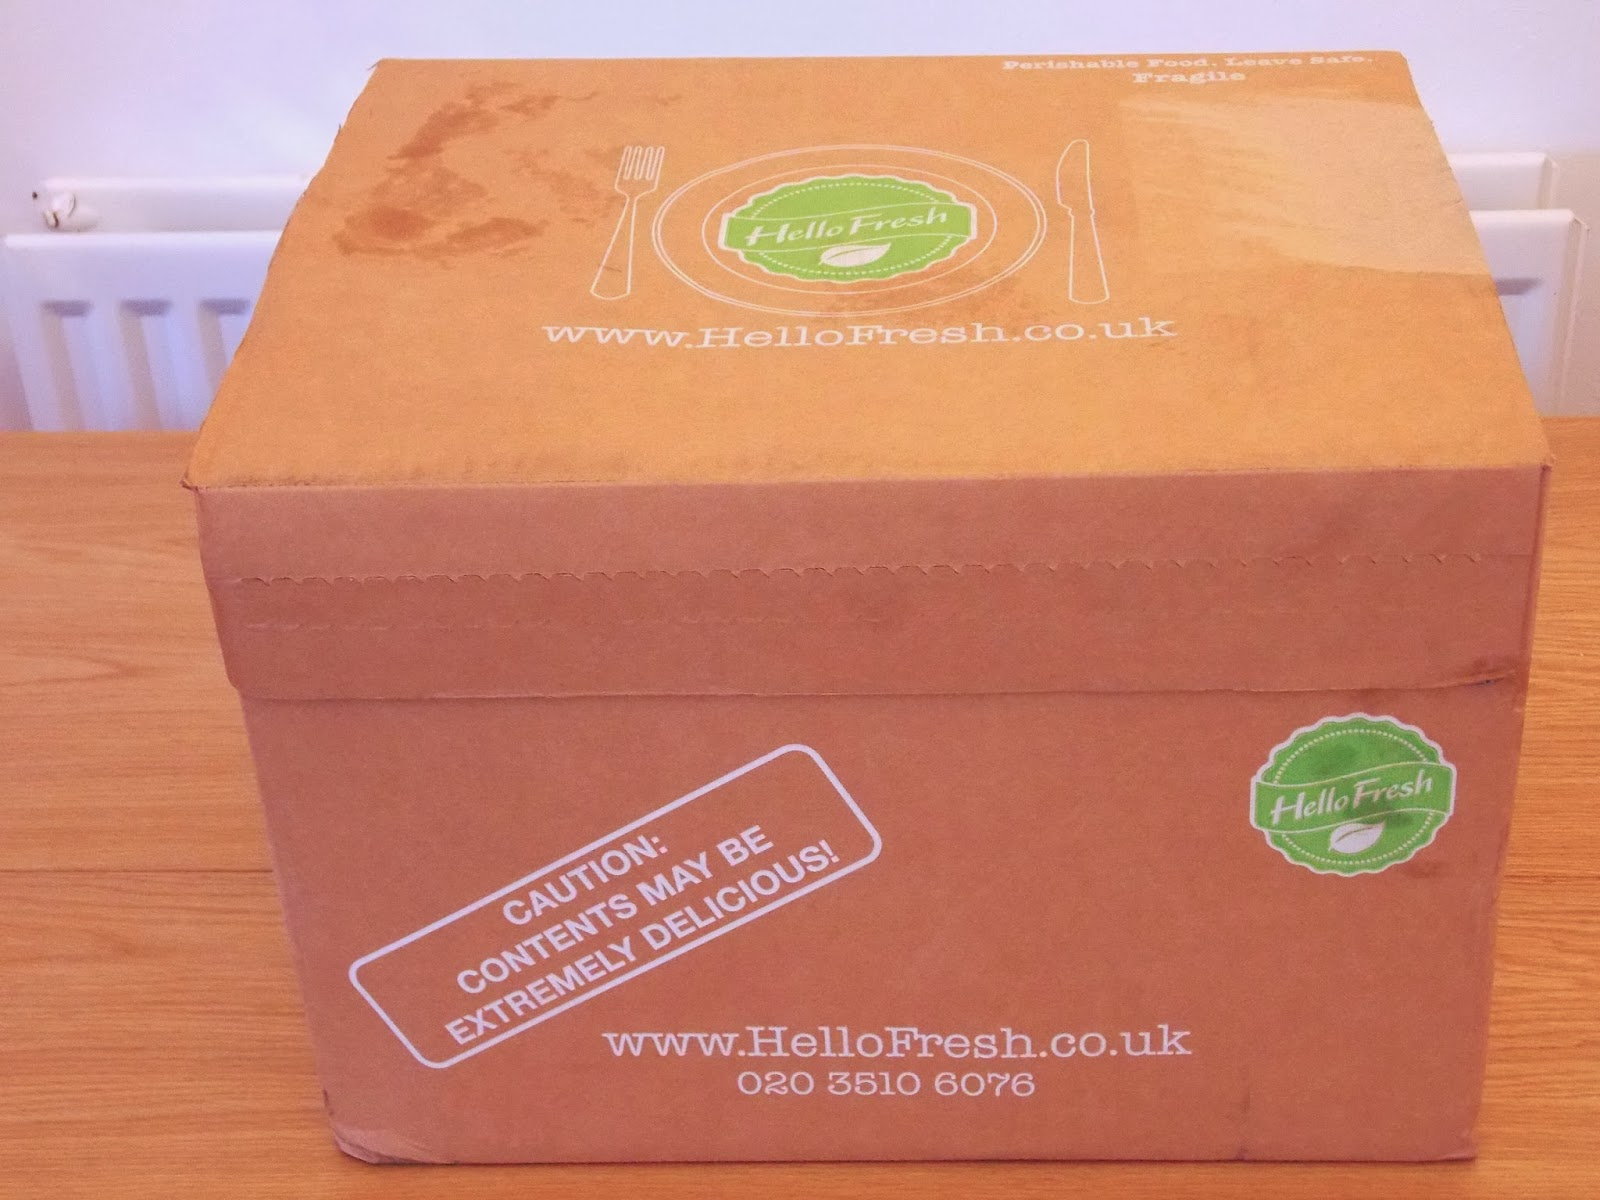 Hello Fresh Box: The Packaging